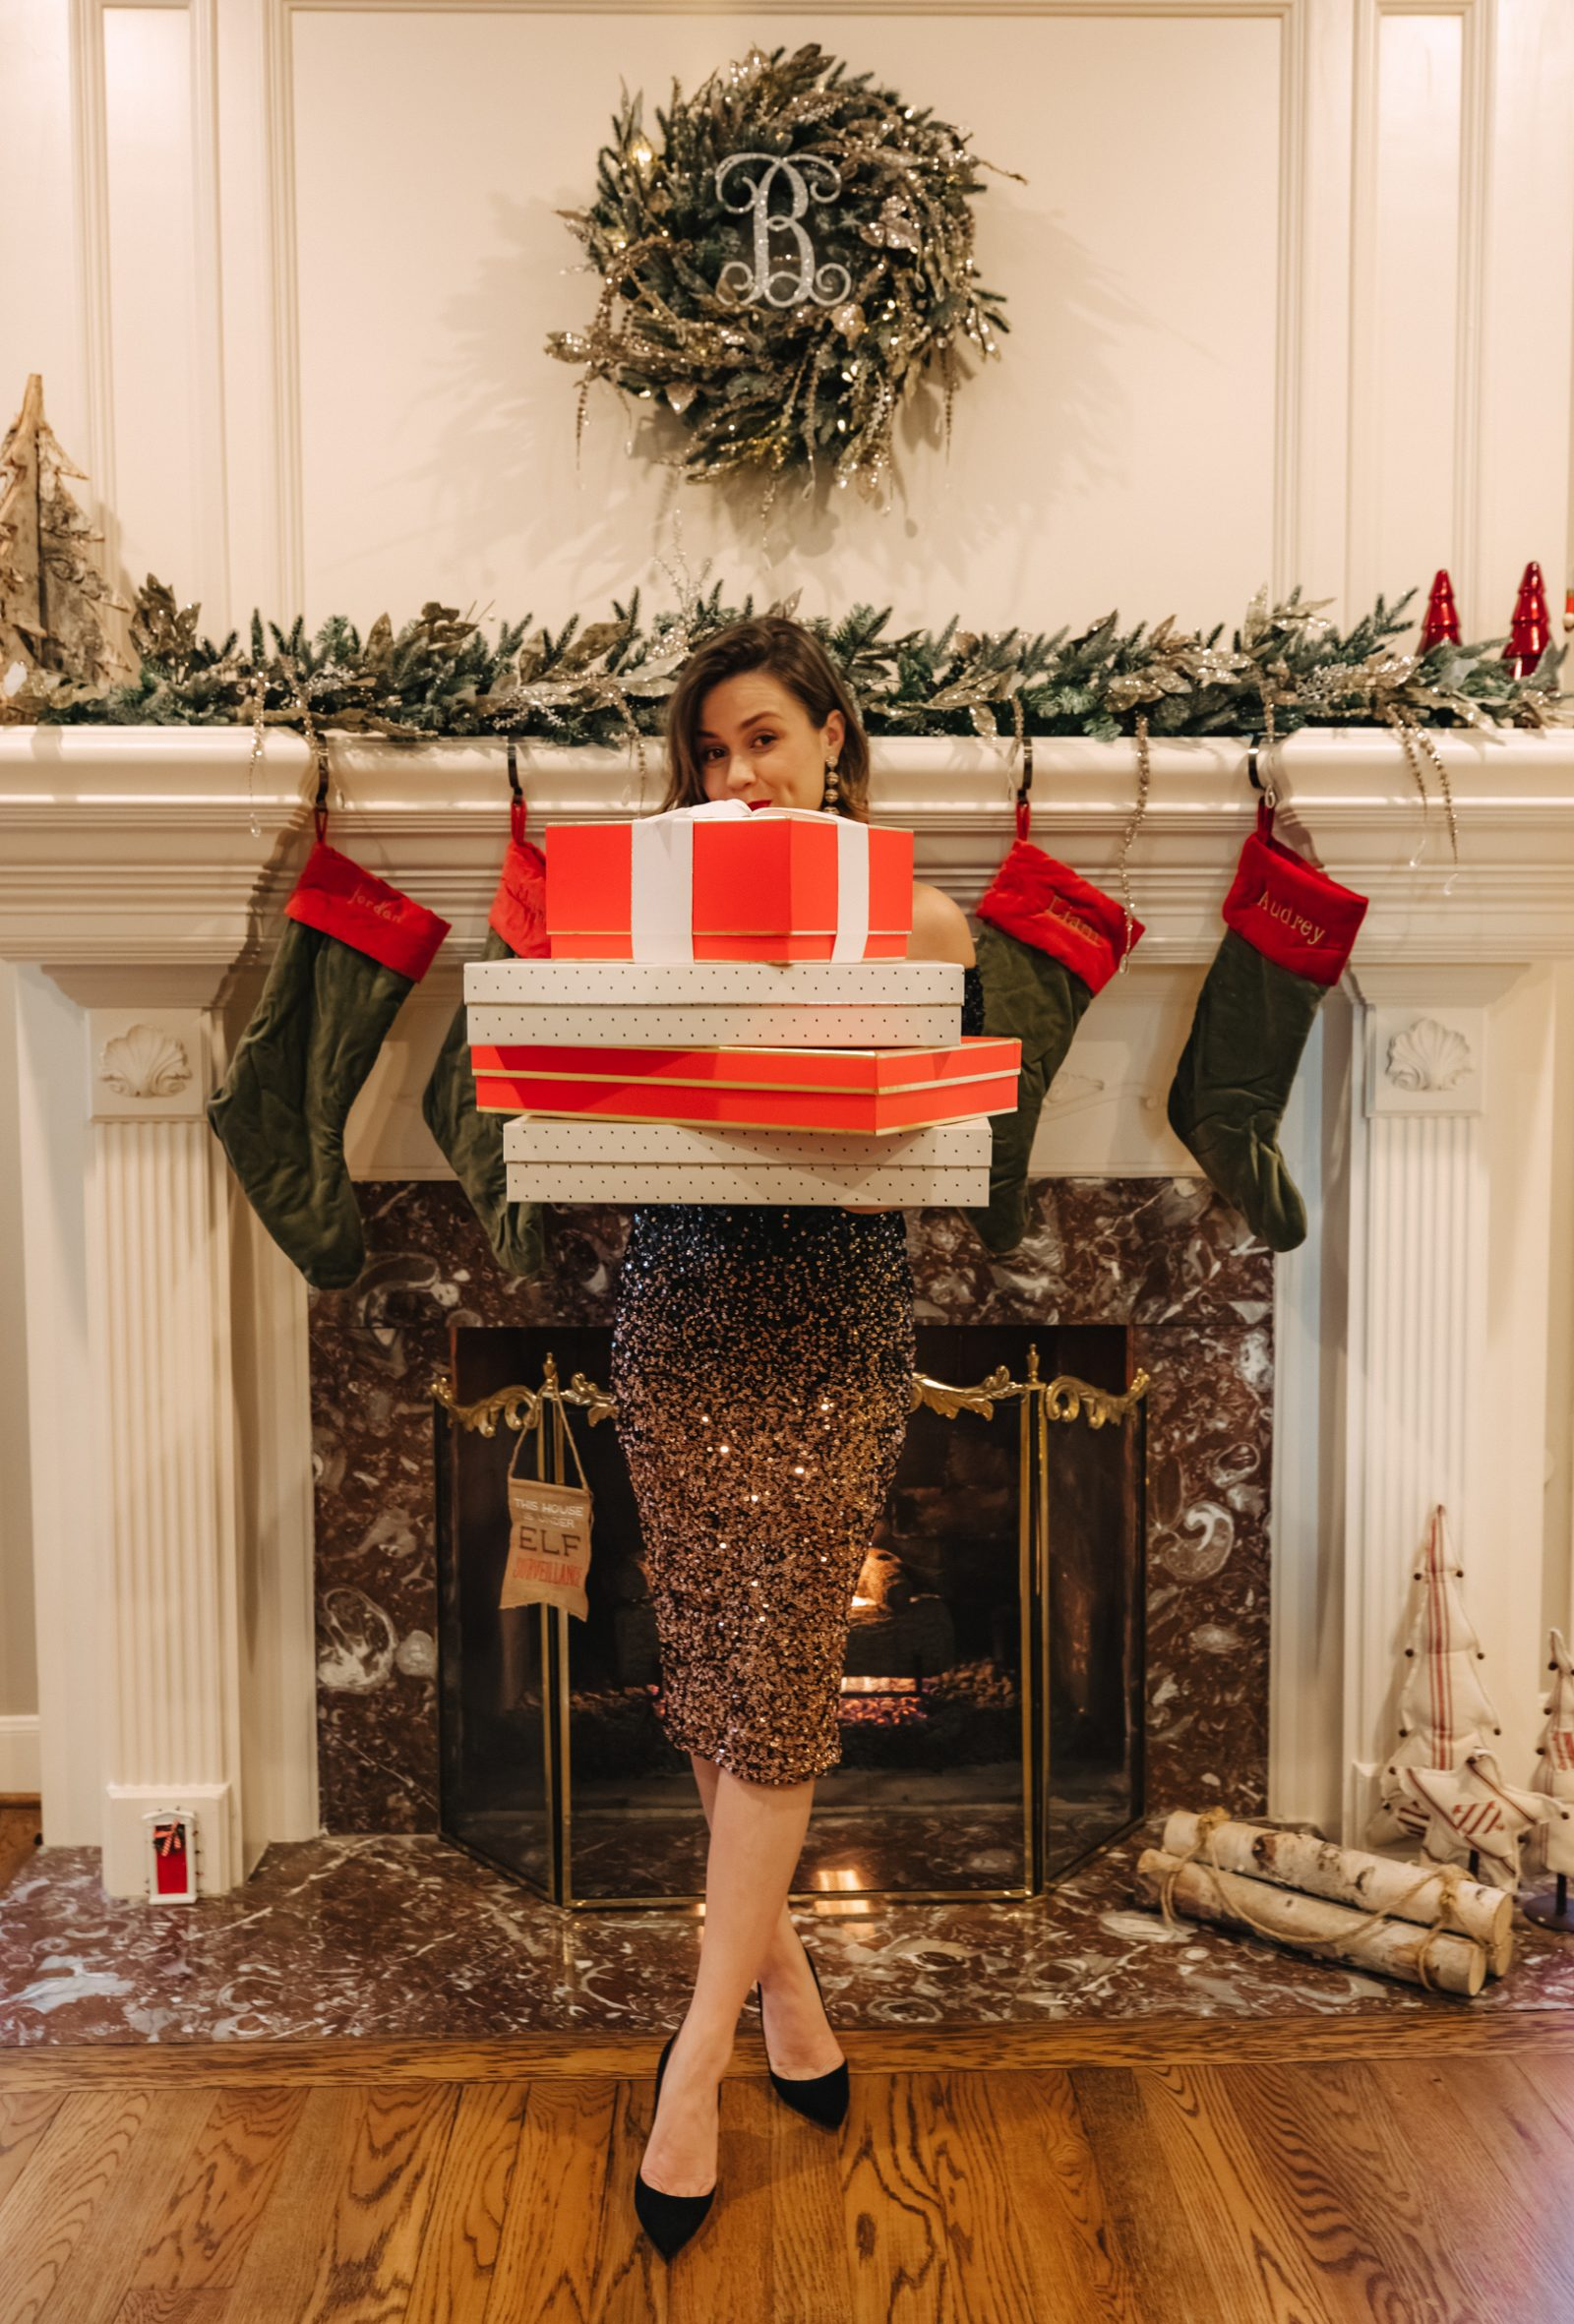 Looking for the perfect splurge-worthy gift for her? Houston blogger Elly Brown shares Gift Ideas for Her under $100.